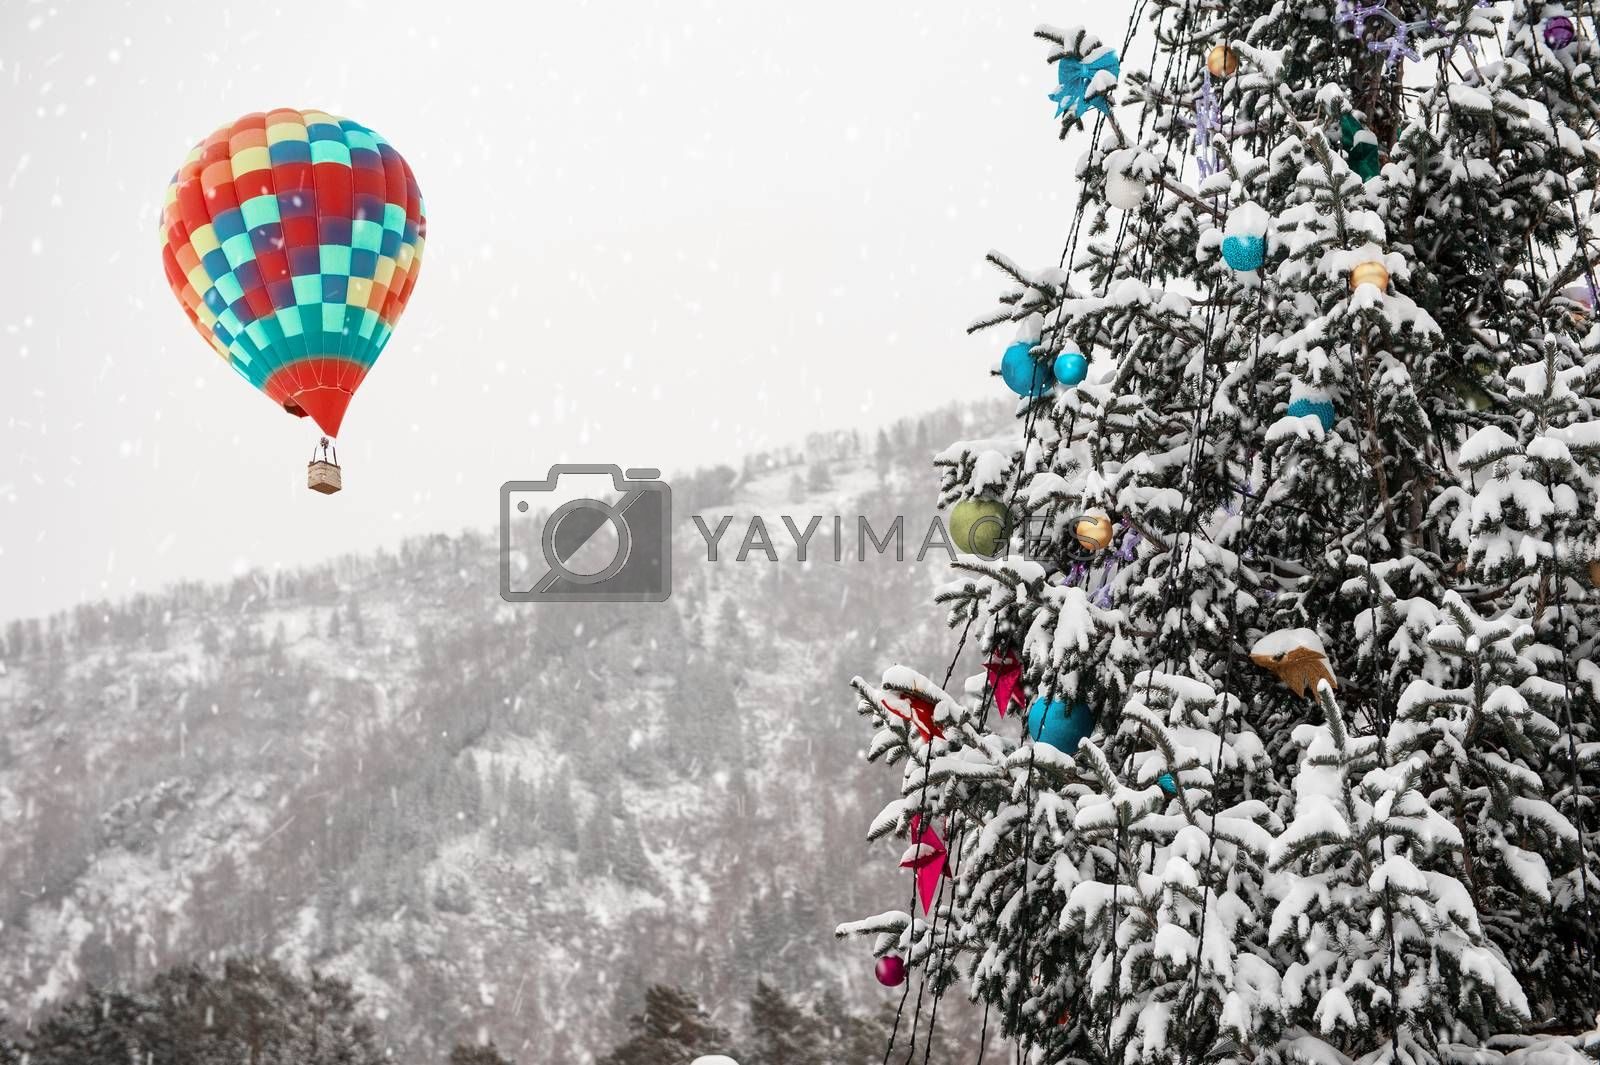 New year fir tree in the mountain forest and aerostat in the sky